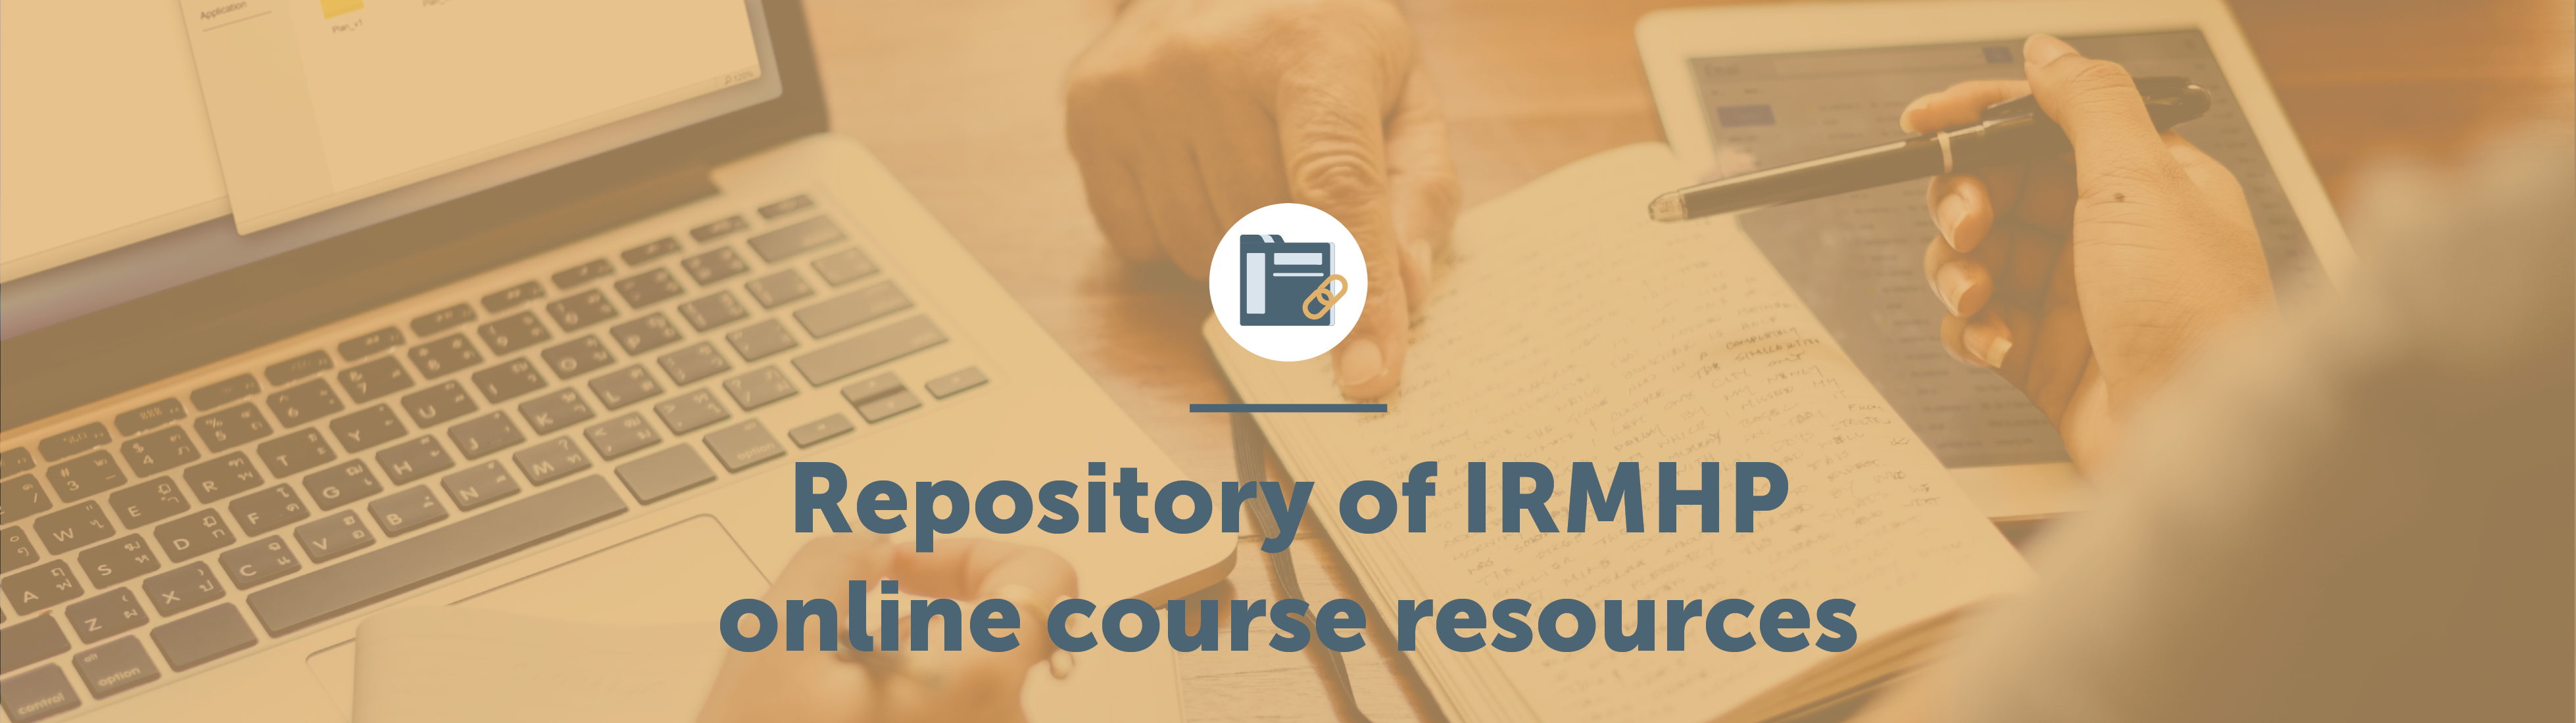 Repository of IRMHP online course resources